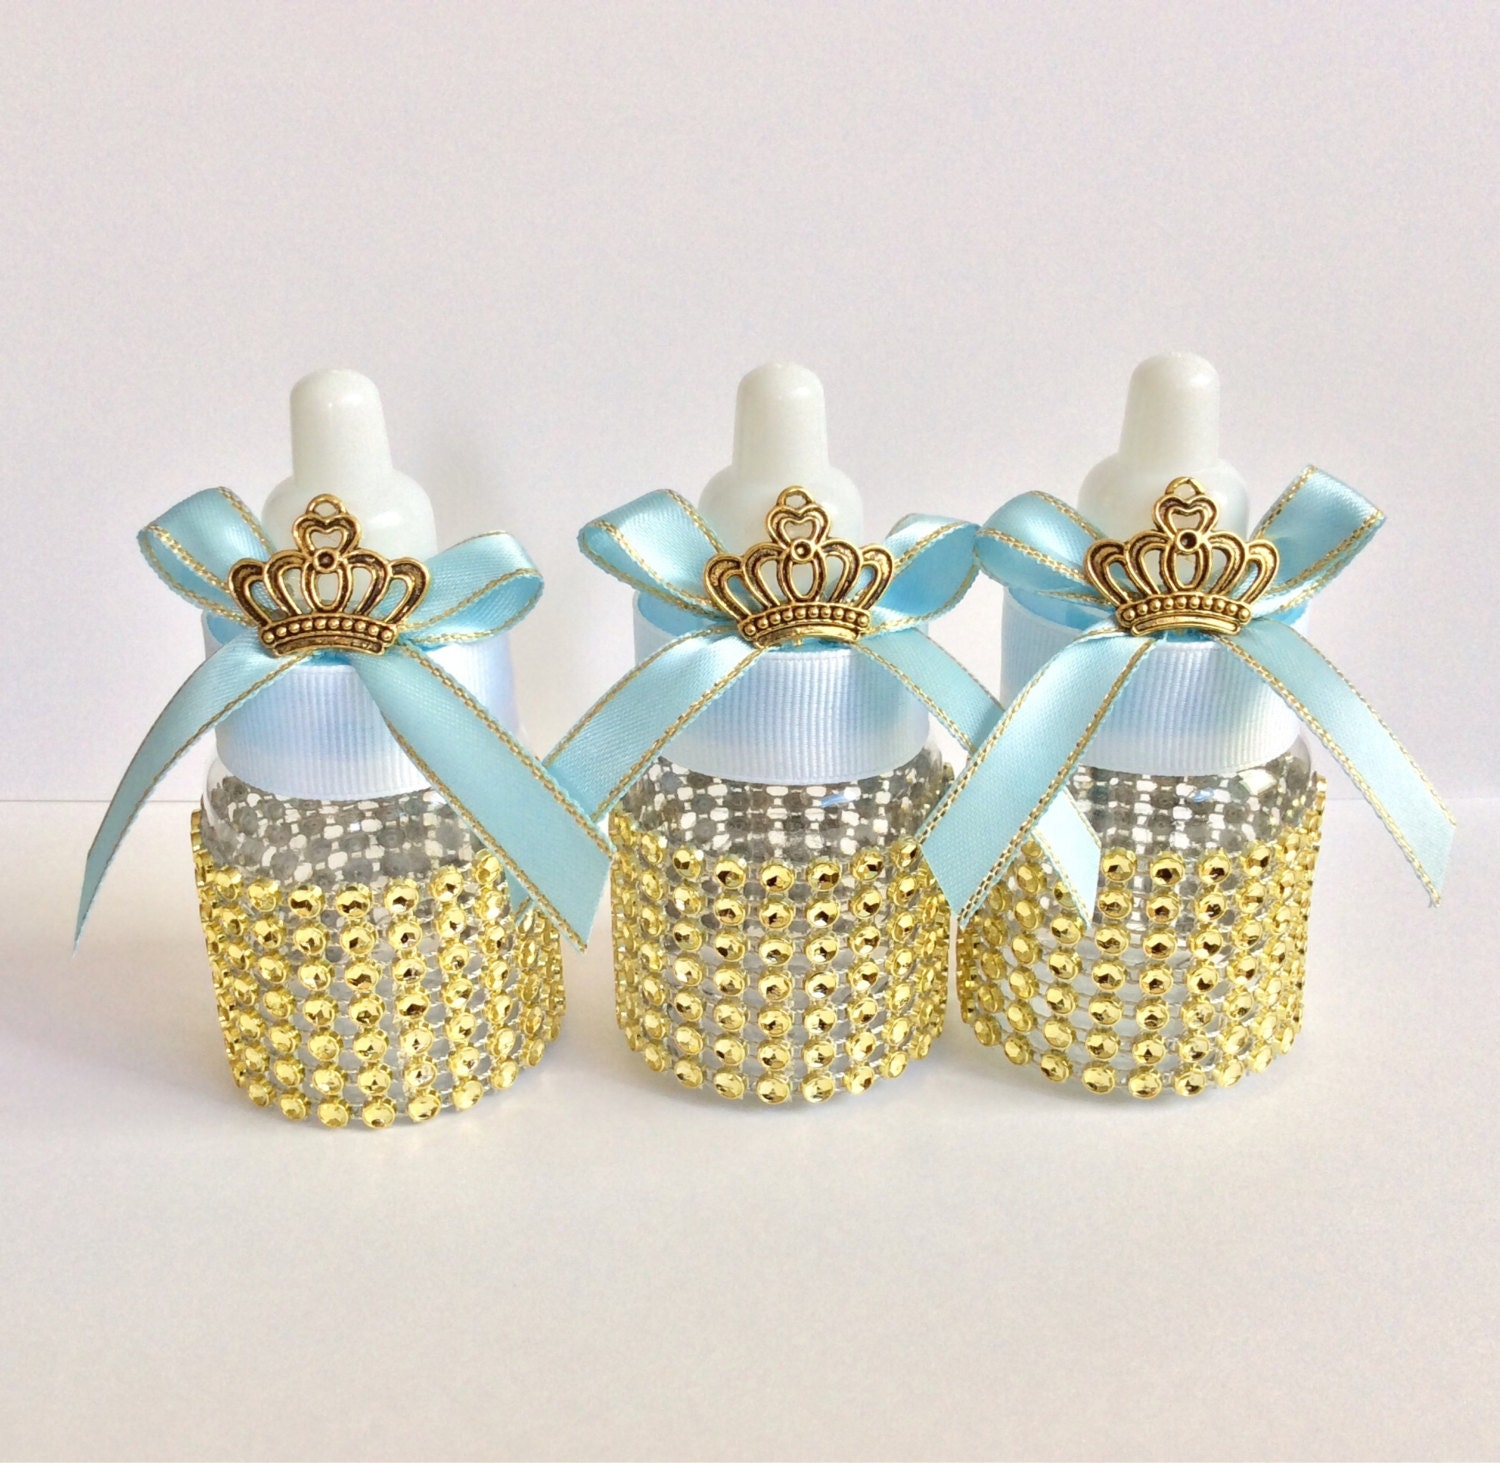 Prince Baby Shower Favors: Royal Blue Baby Shower Favors Little Prince By